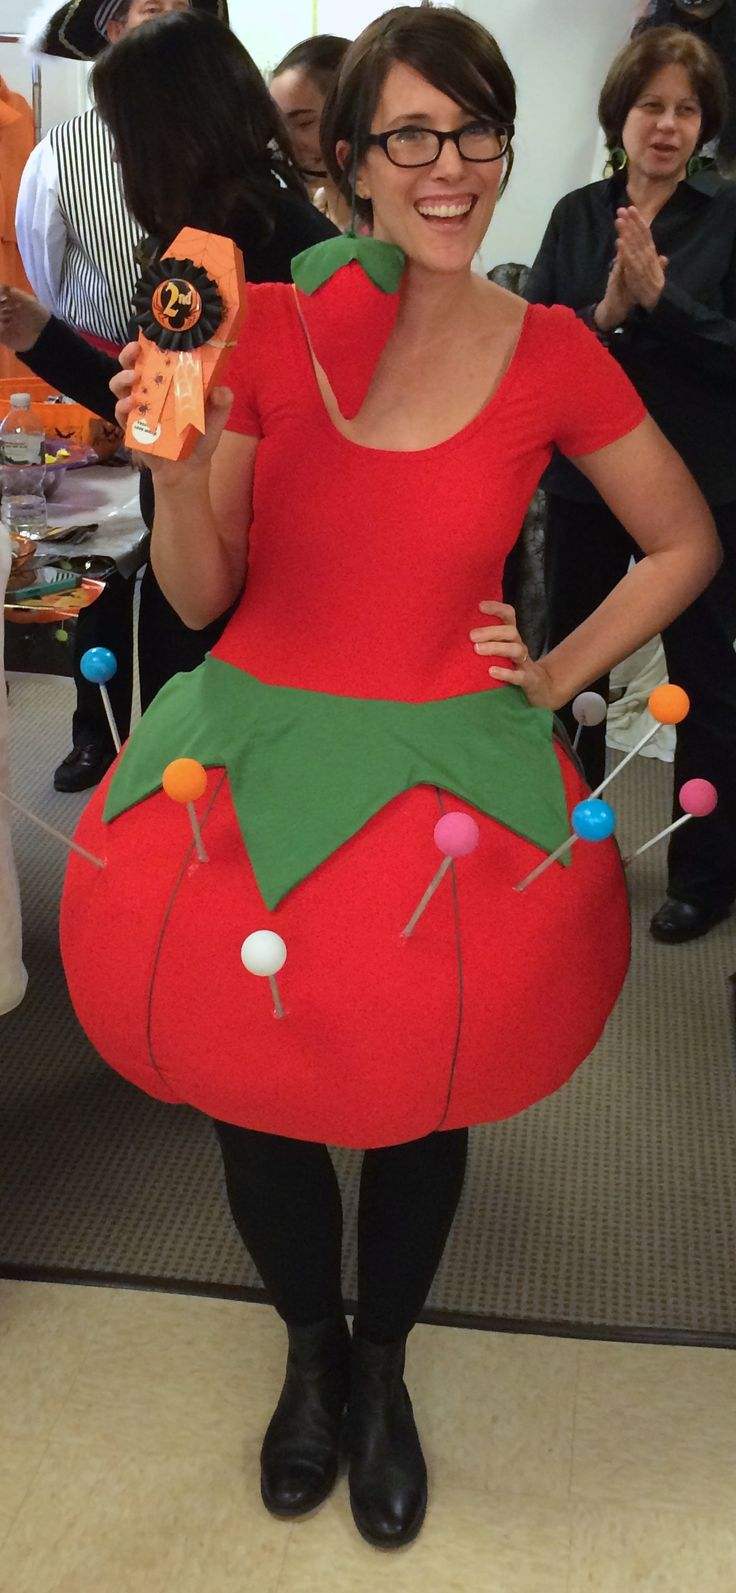 Pincushion costume! Second-place winner at the annual McCall Pattern Company costume contest & employee lunch. #sewingcostume